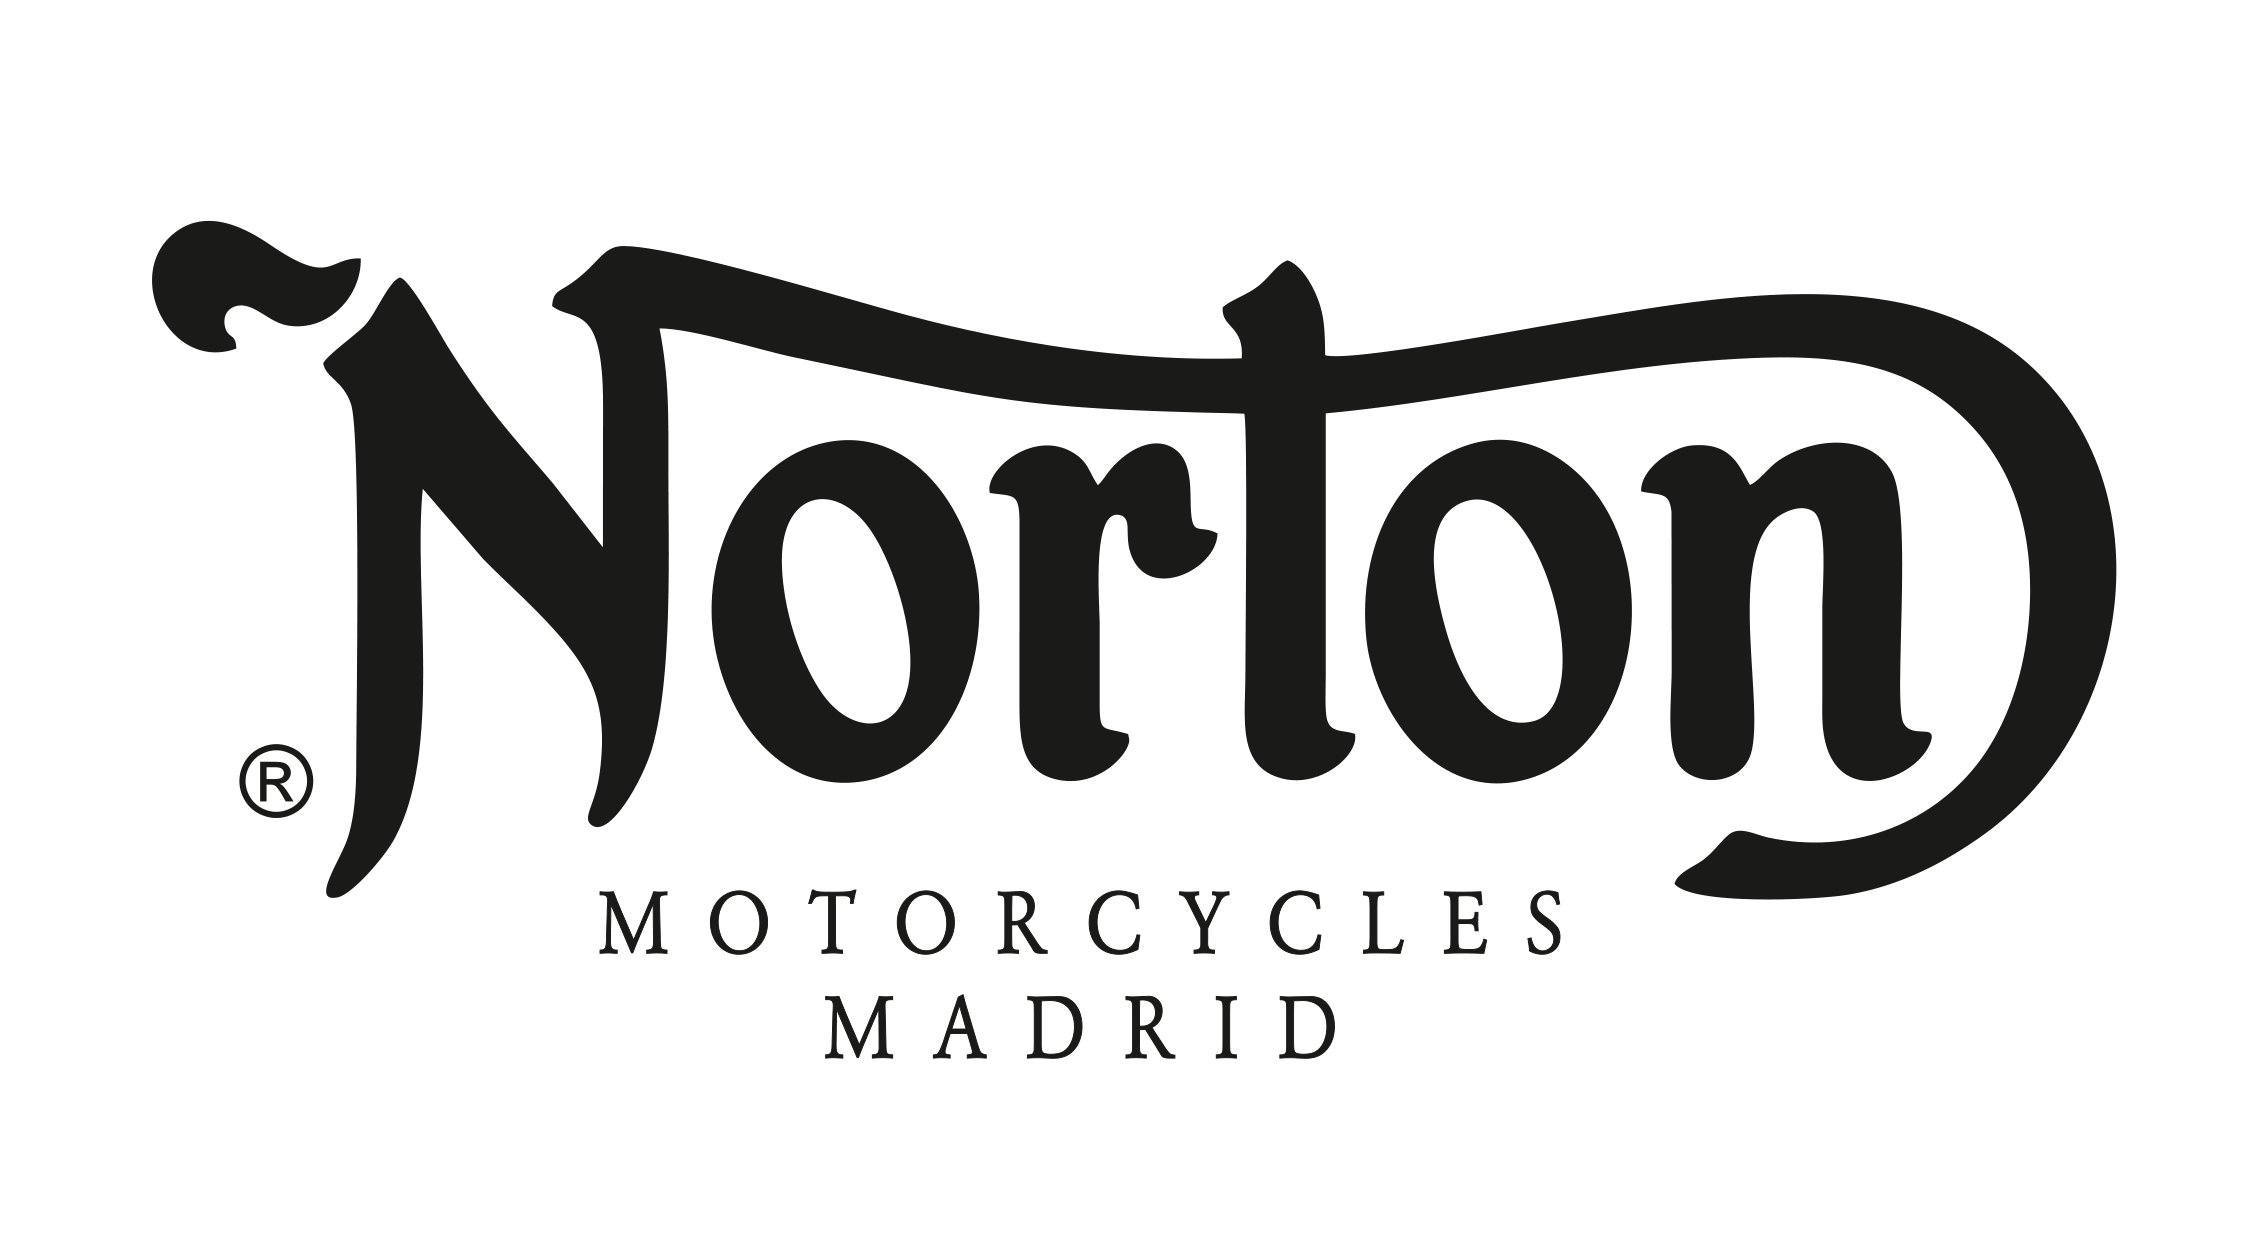 Norton Motorcycles Madrid - Patrocinador